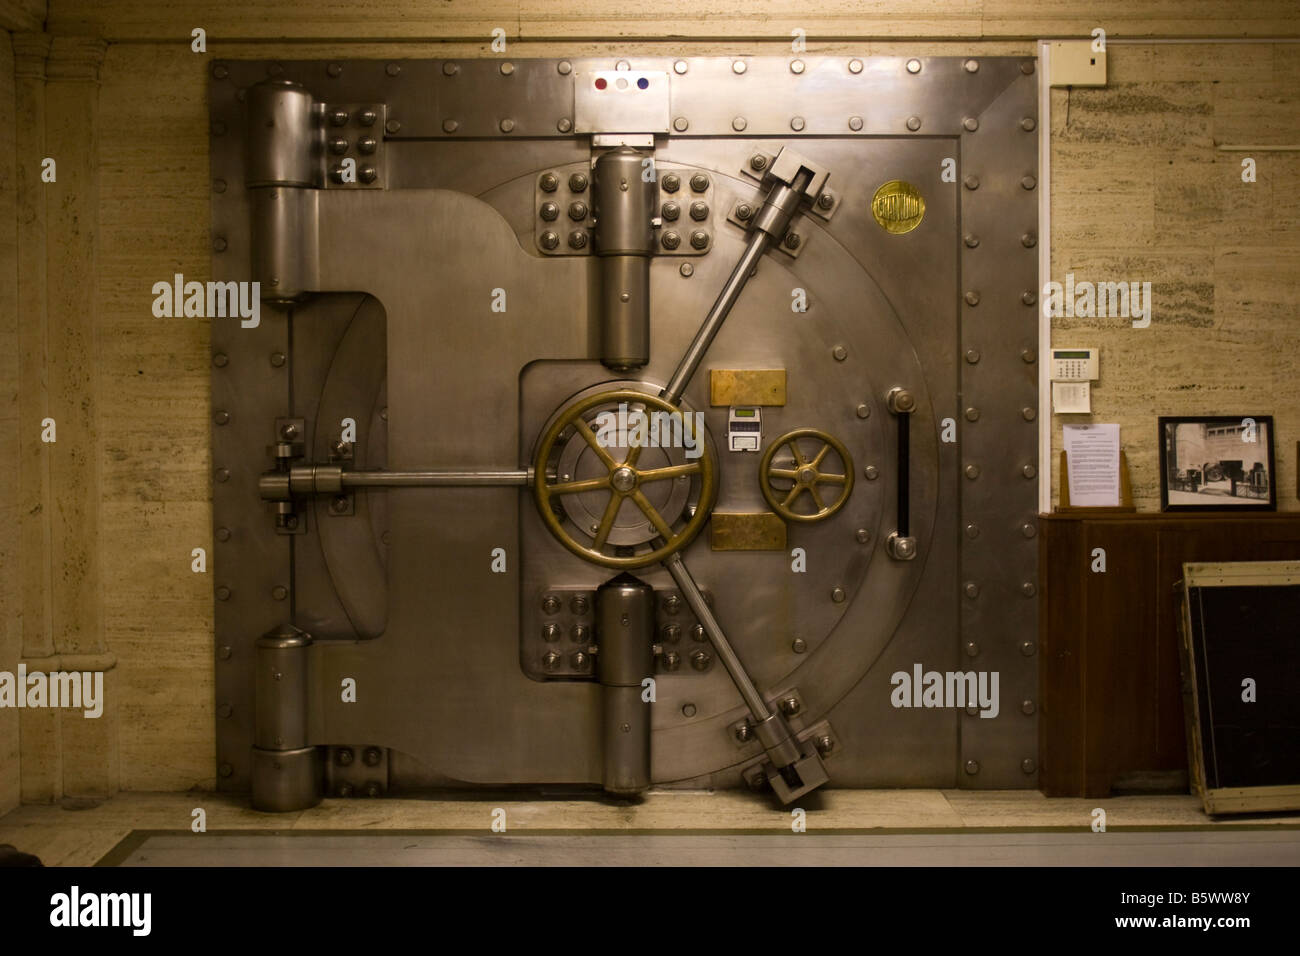 Closed Bank vault door City of London GB UK - Stock Image